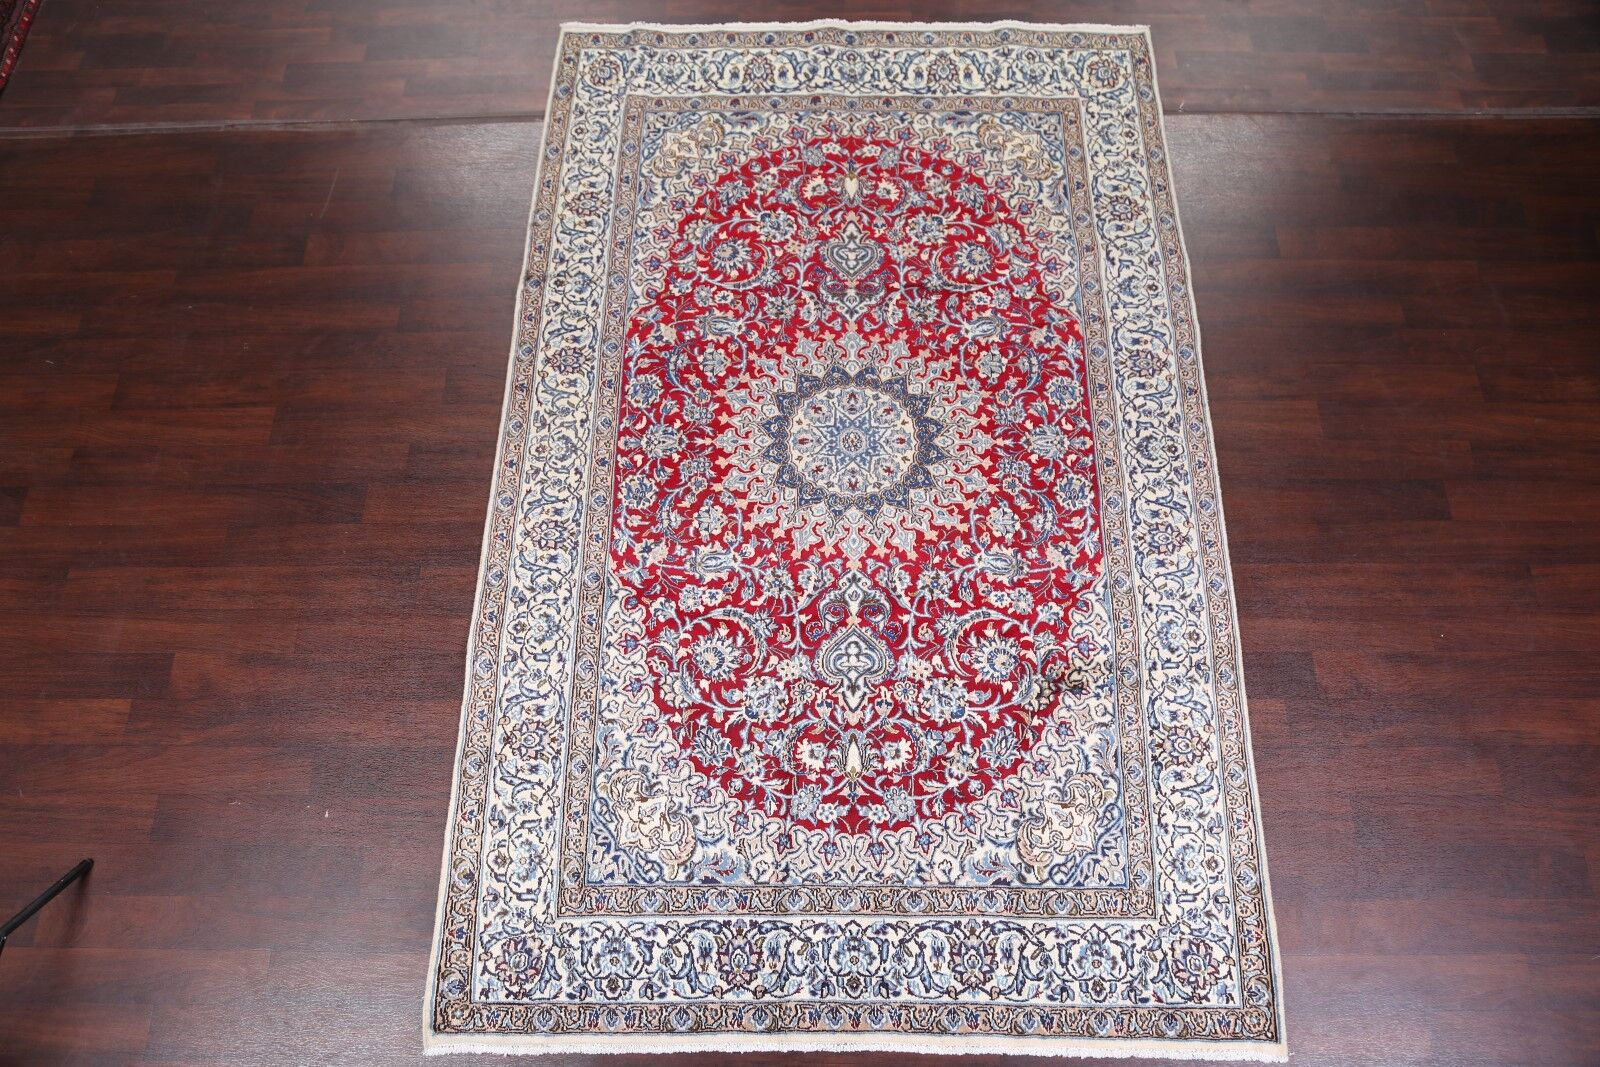 One-of-a-Kind Nain Isfahan Vintage Persian Traditional Hand-Knotted 6'7